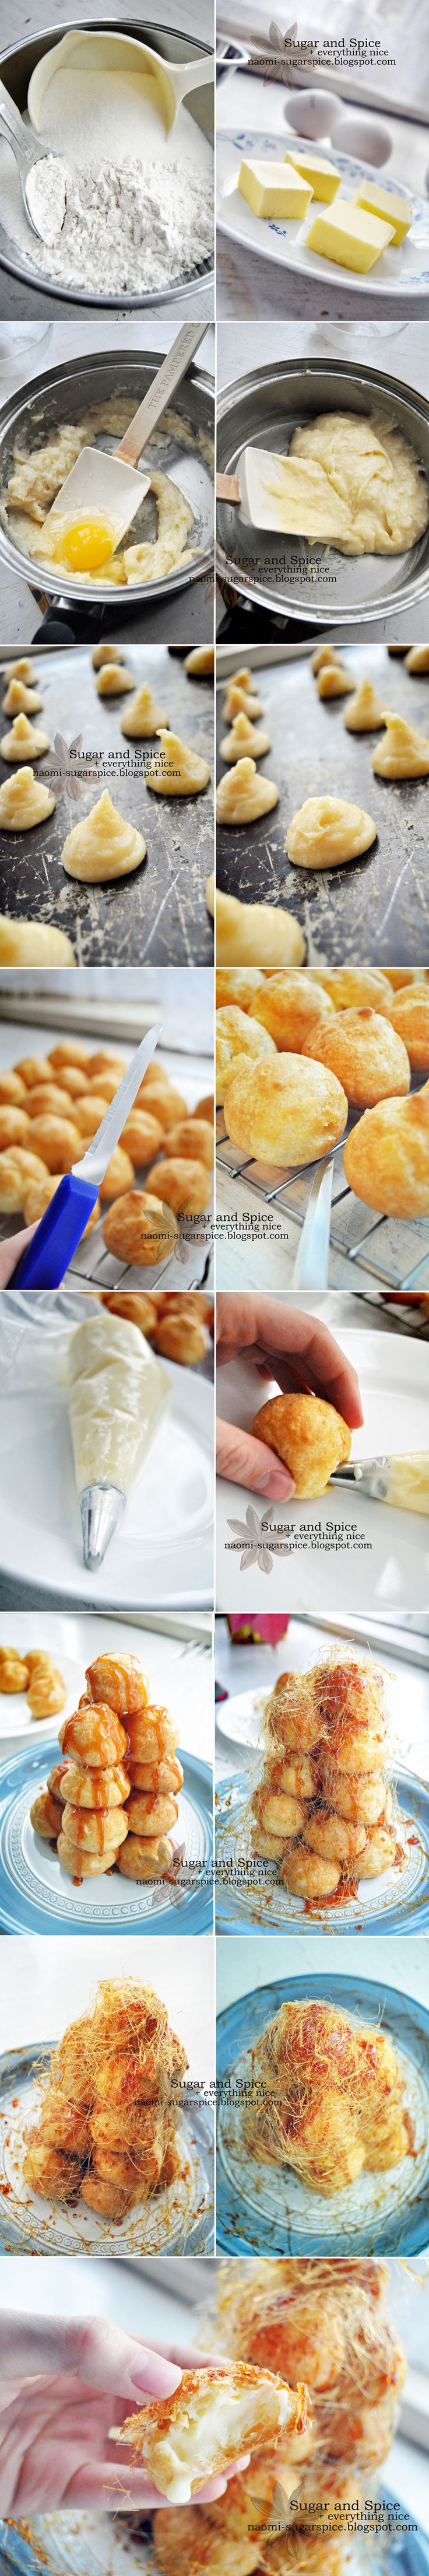 How to make a croquembouche from scratch (cream puff tower) - add a 1/2 tsp lemon juice to sugar and water for caramel